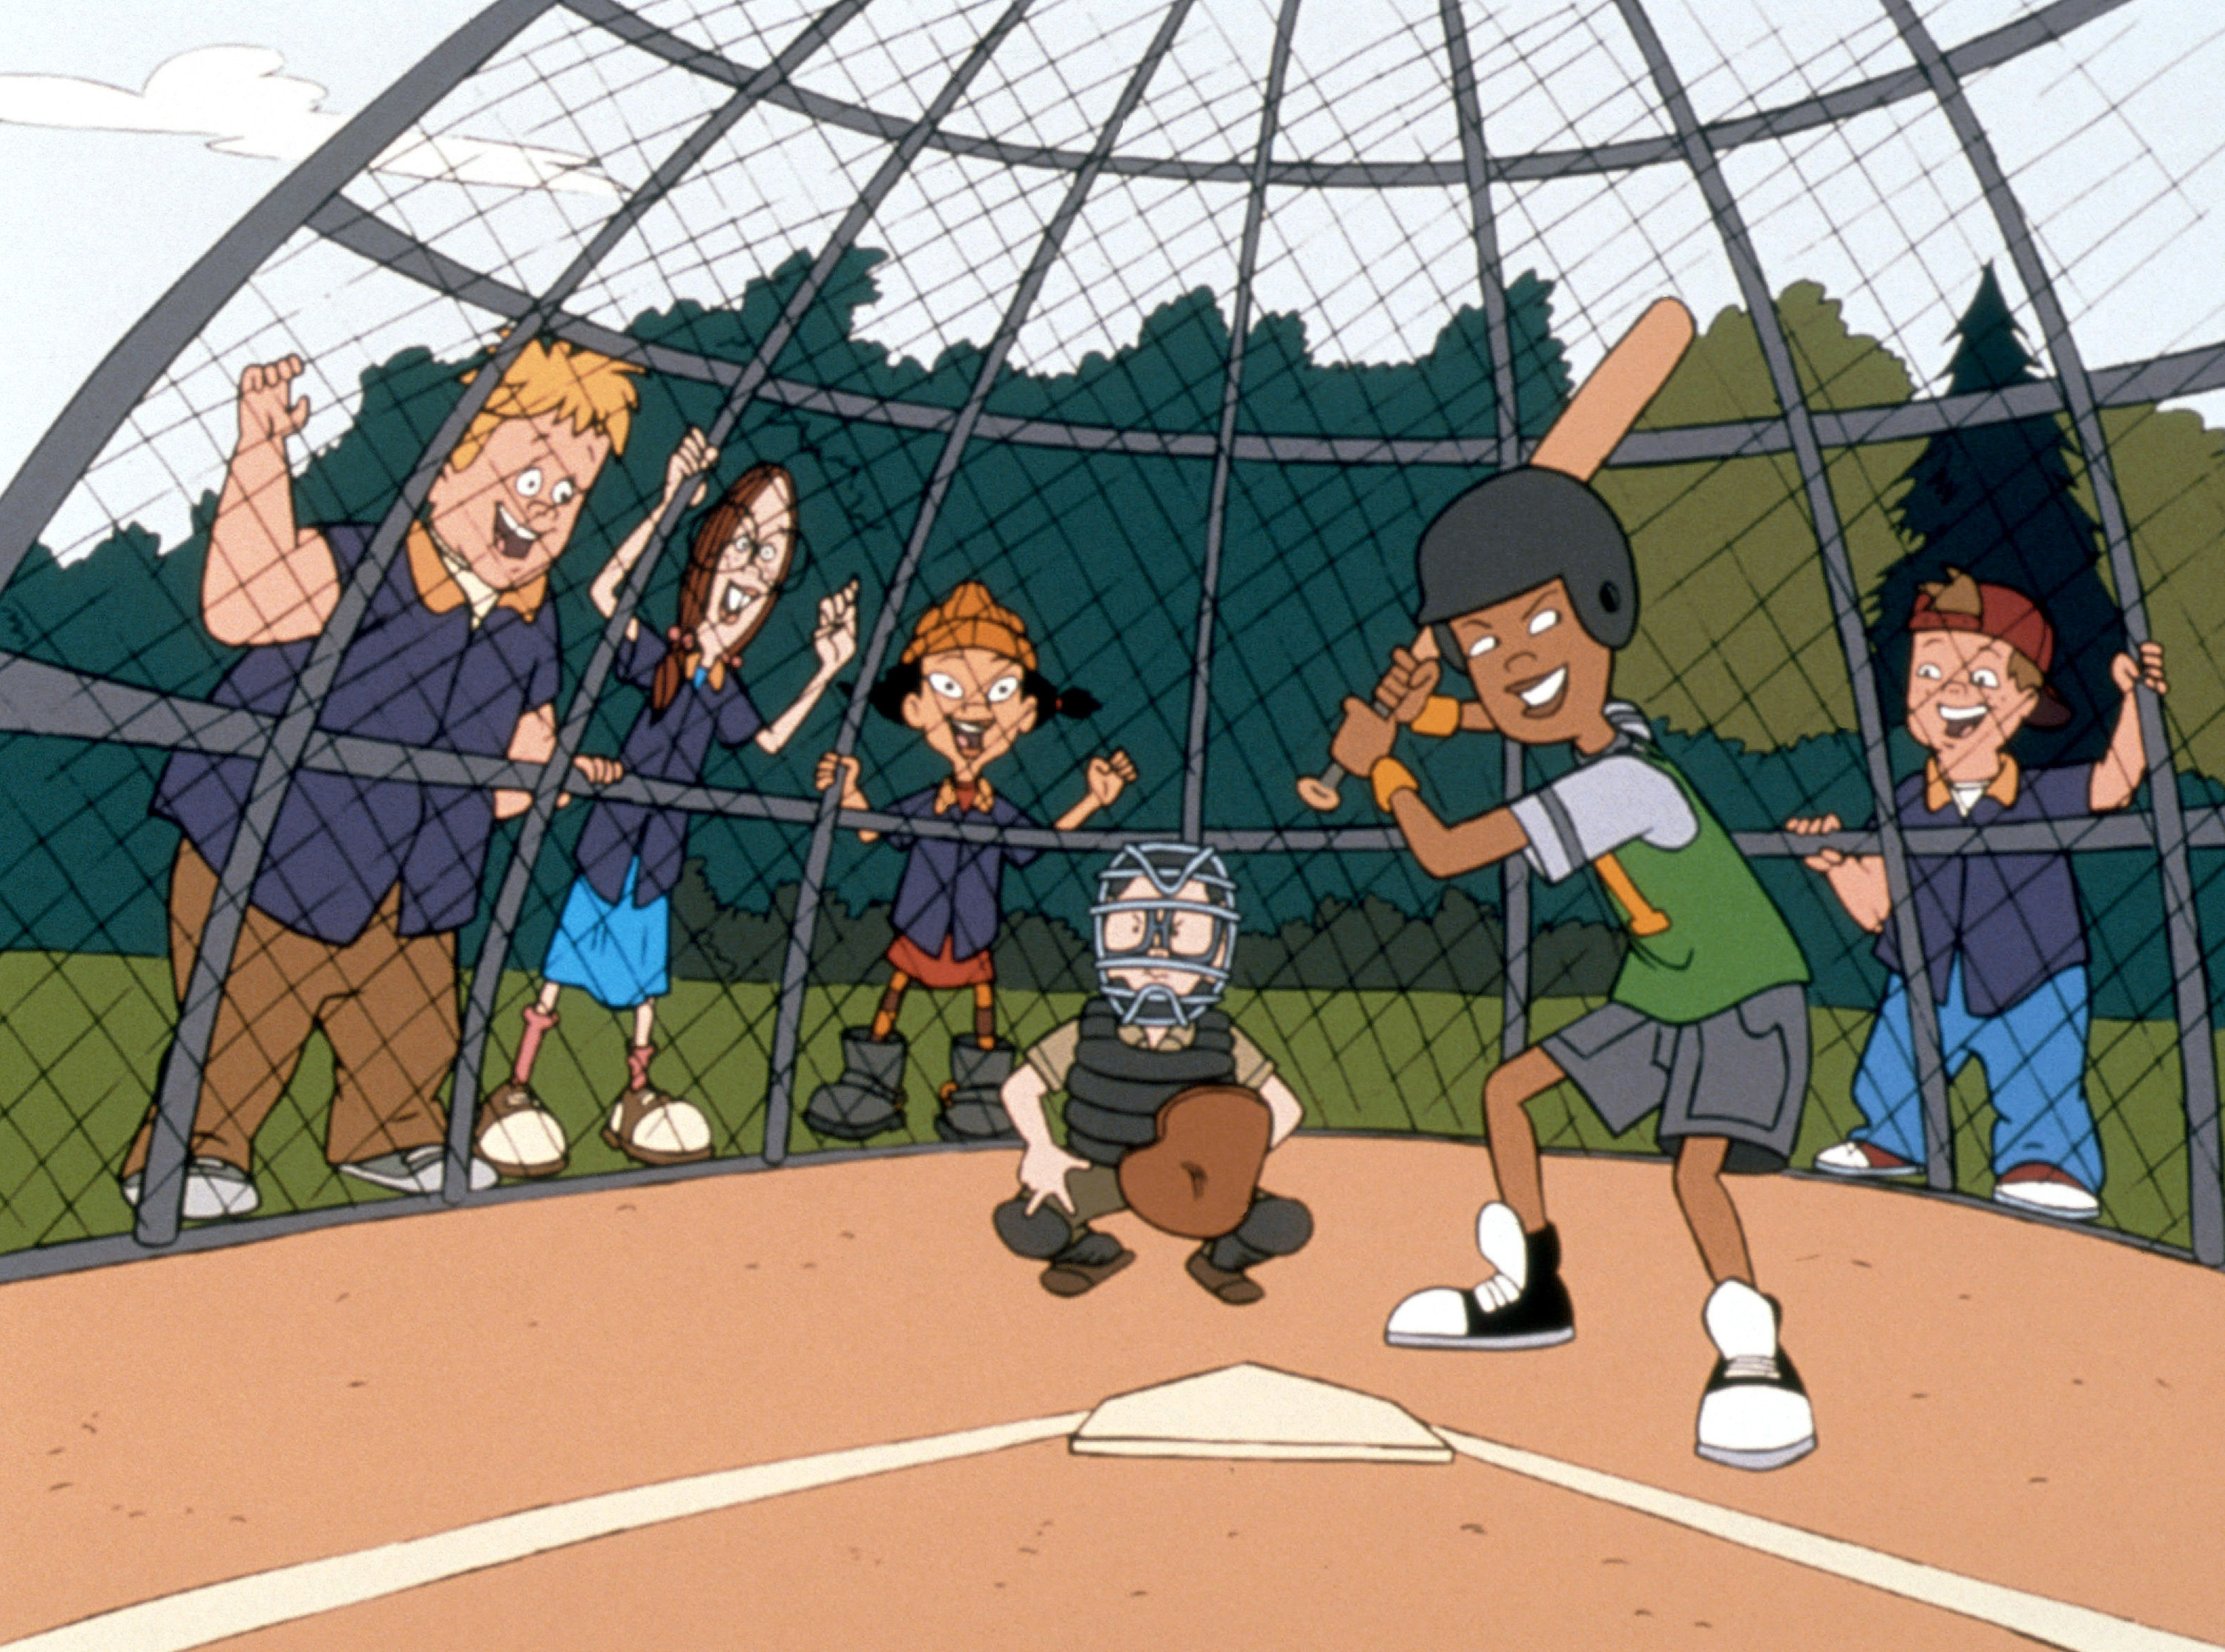 Mickey, Gretchen, Spinelli, and TJ cheer on Vince as he's up to bat while Gus plays catcher